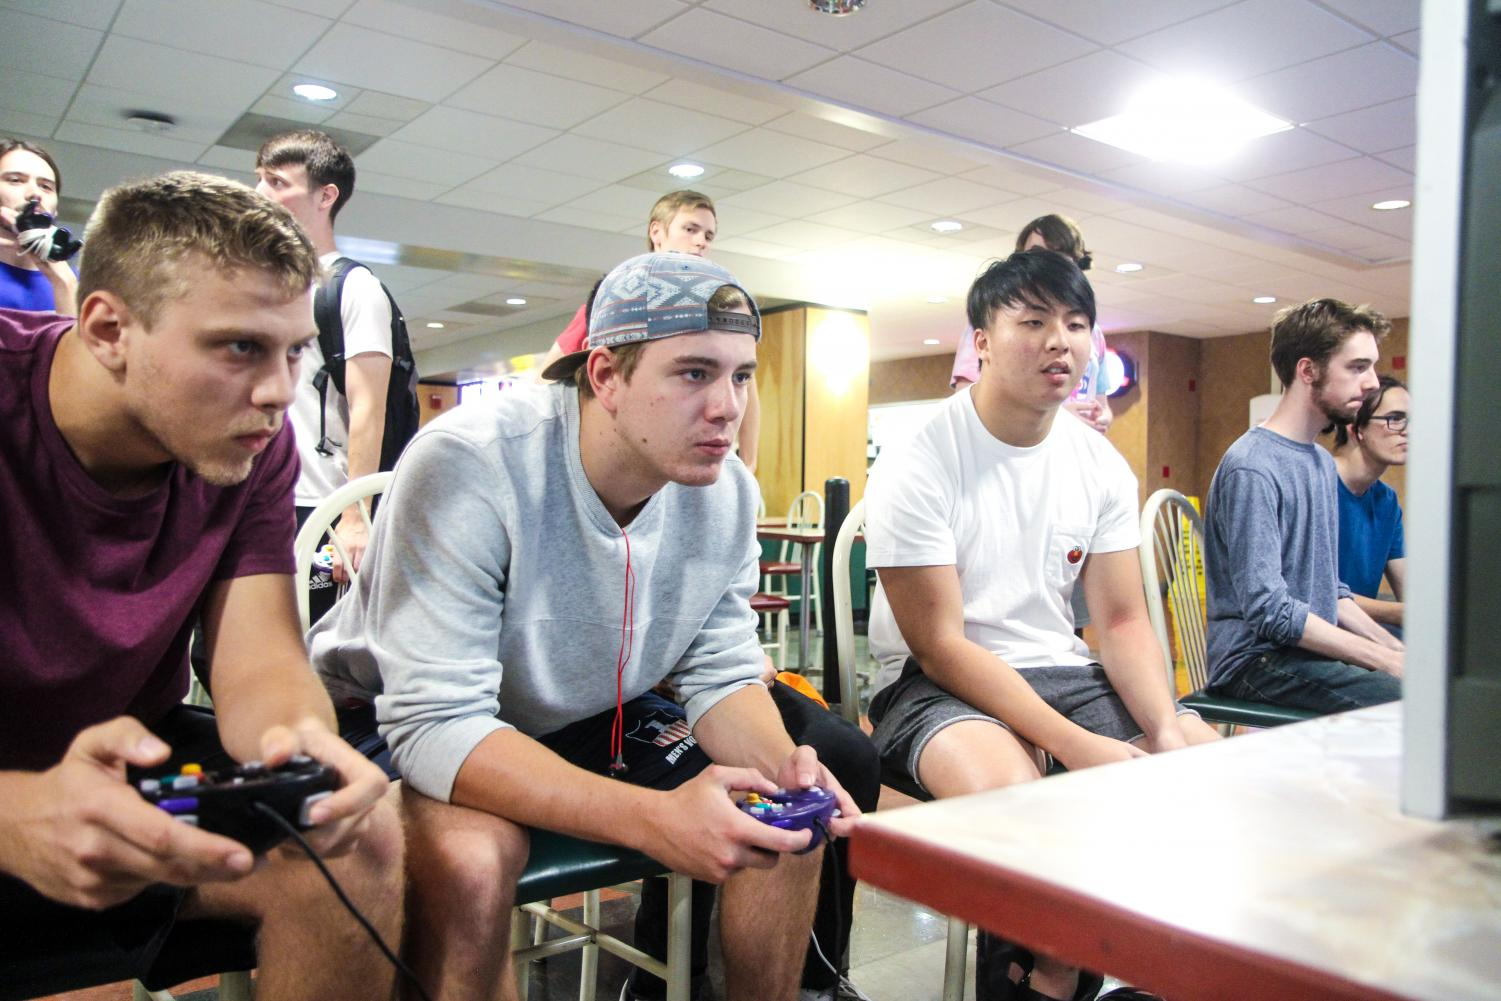 Students Wesley Blodig, Kyle Biedron and Bernard Chan play Super Smash Brothers Melee for the Nintendo Gamecube in the basement of the Illini Union on Oct. 5.